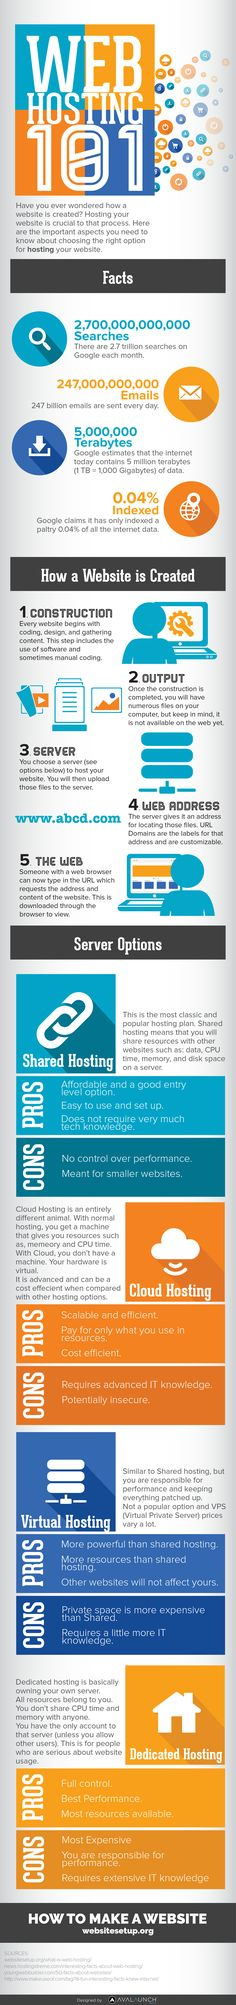 What is Web Hosting? Web Hosting For Dummies